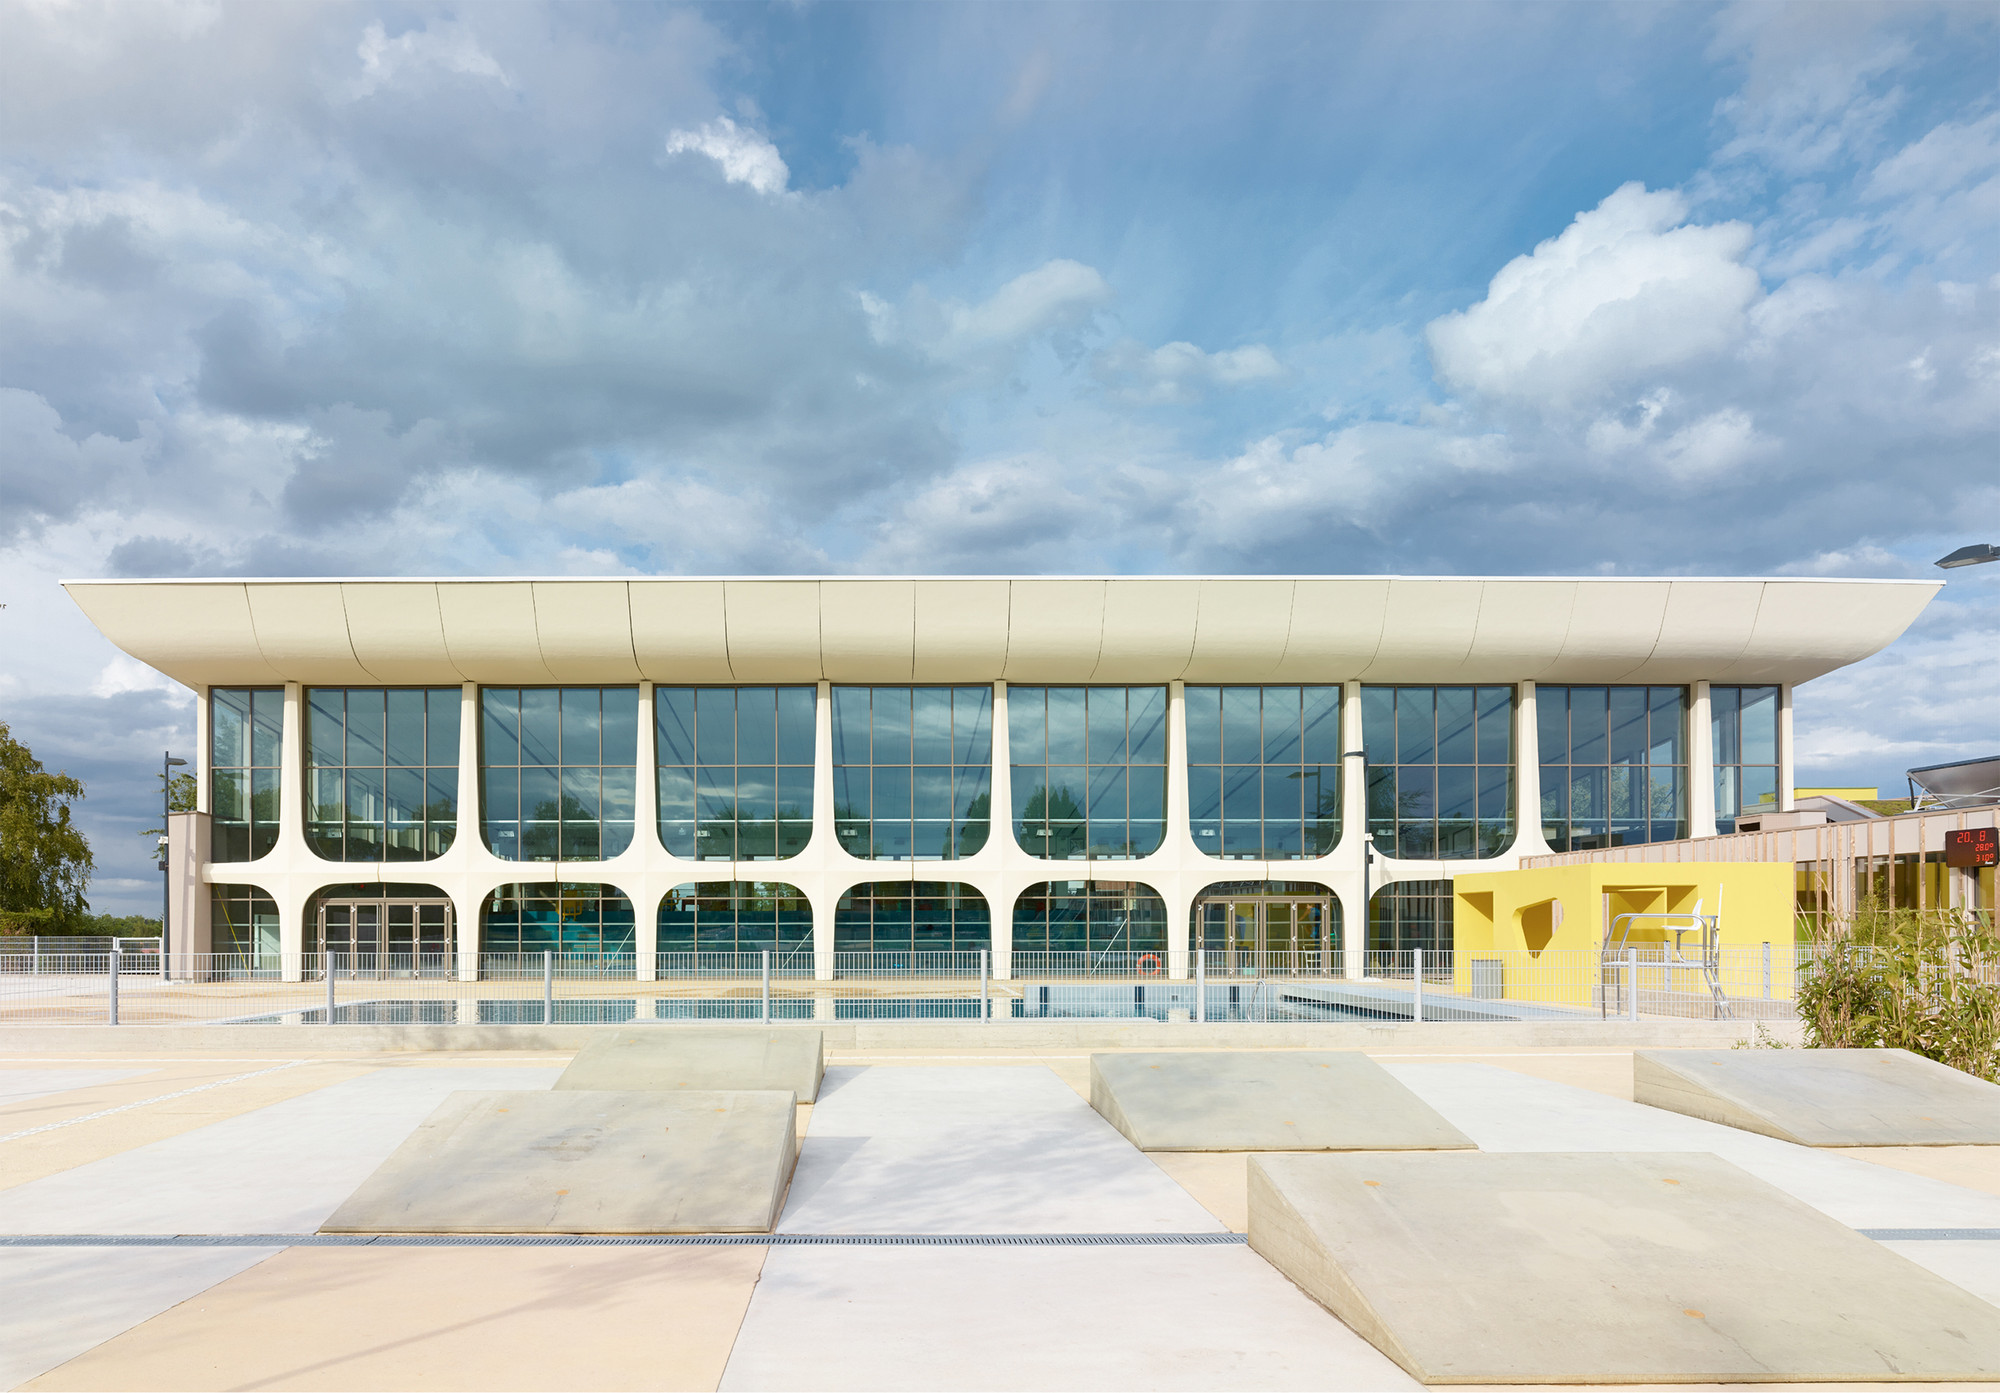 Beautiful Aquatic Centre Montigny Les Metz / DRD Architecture, © Gregoire Auger